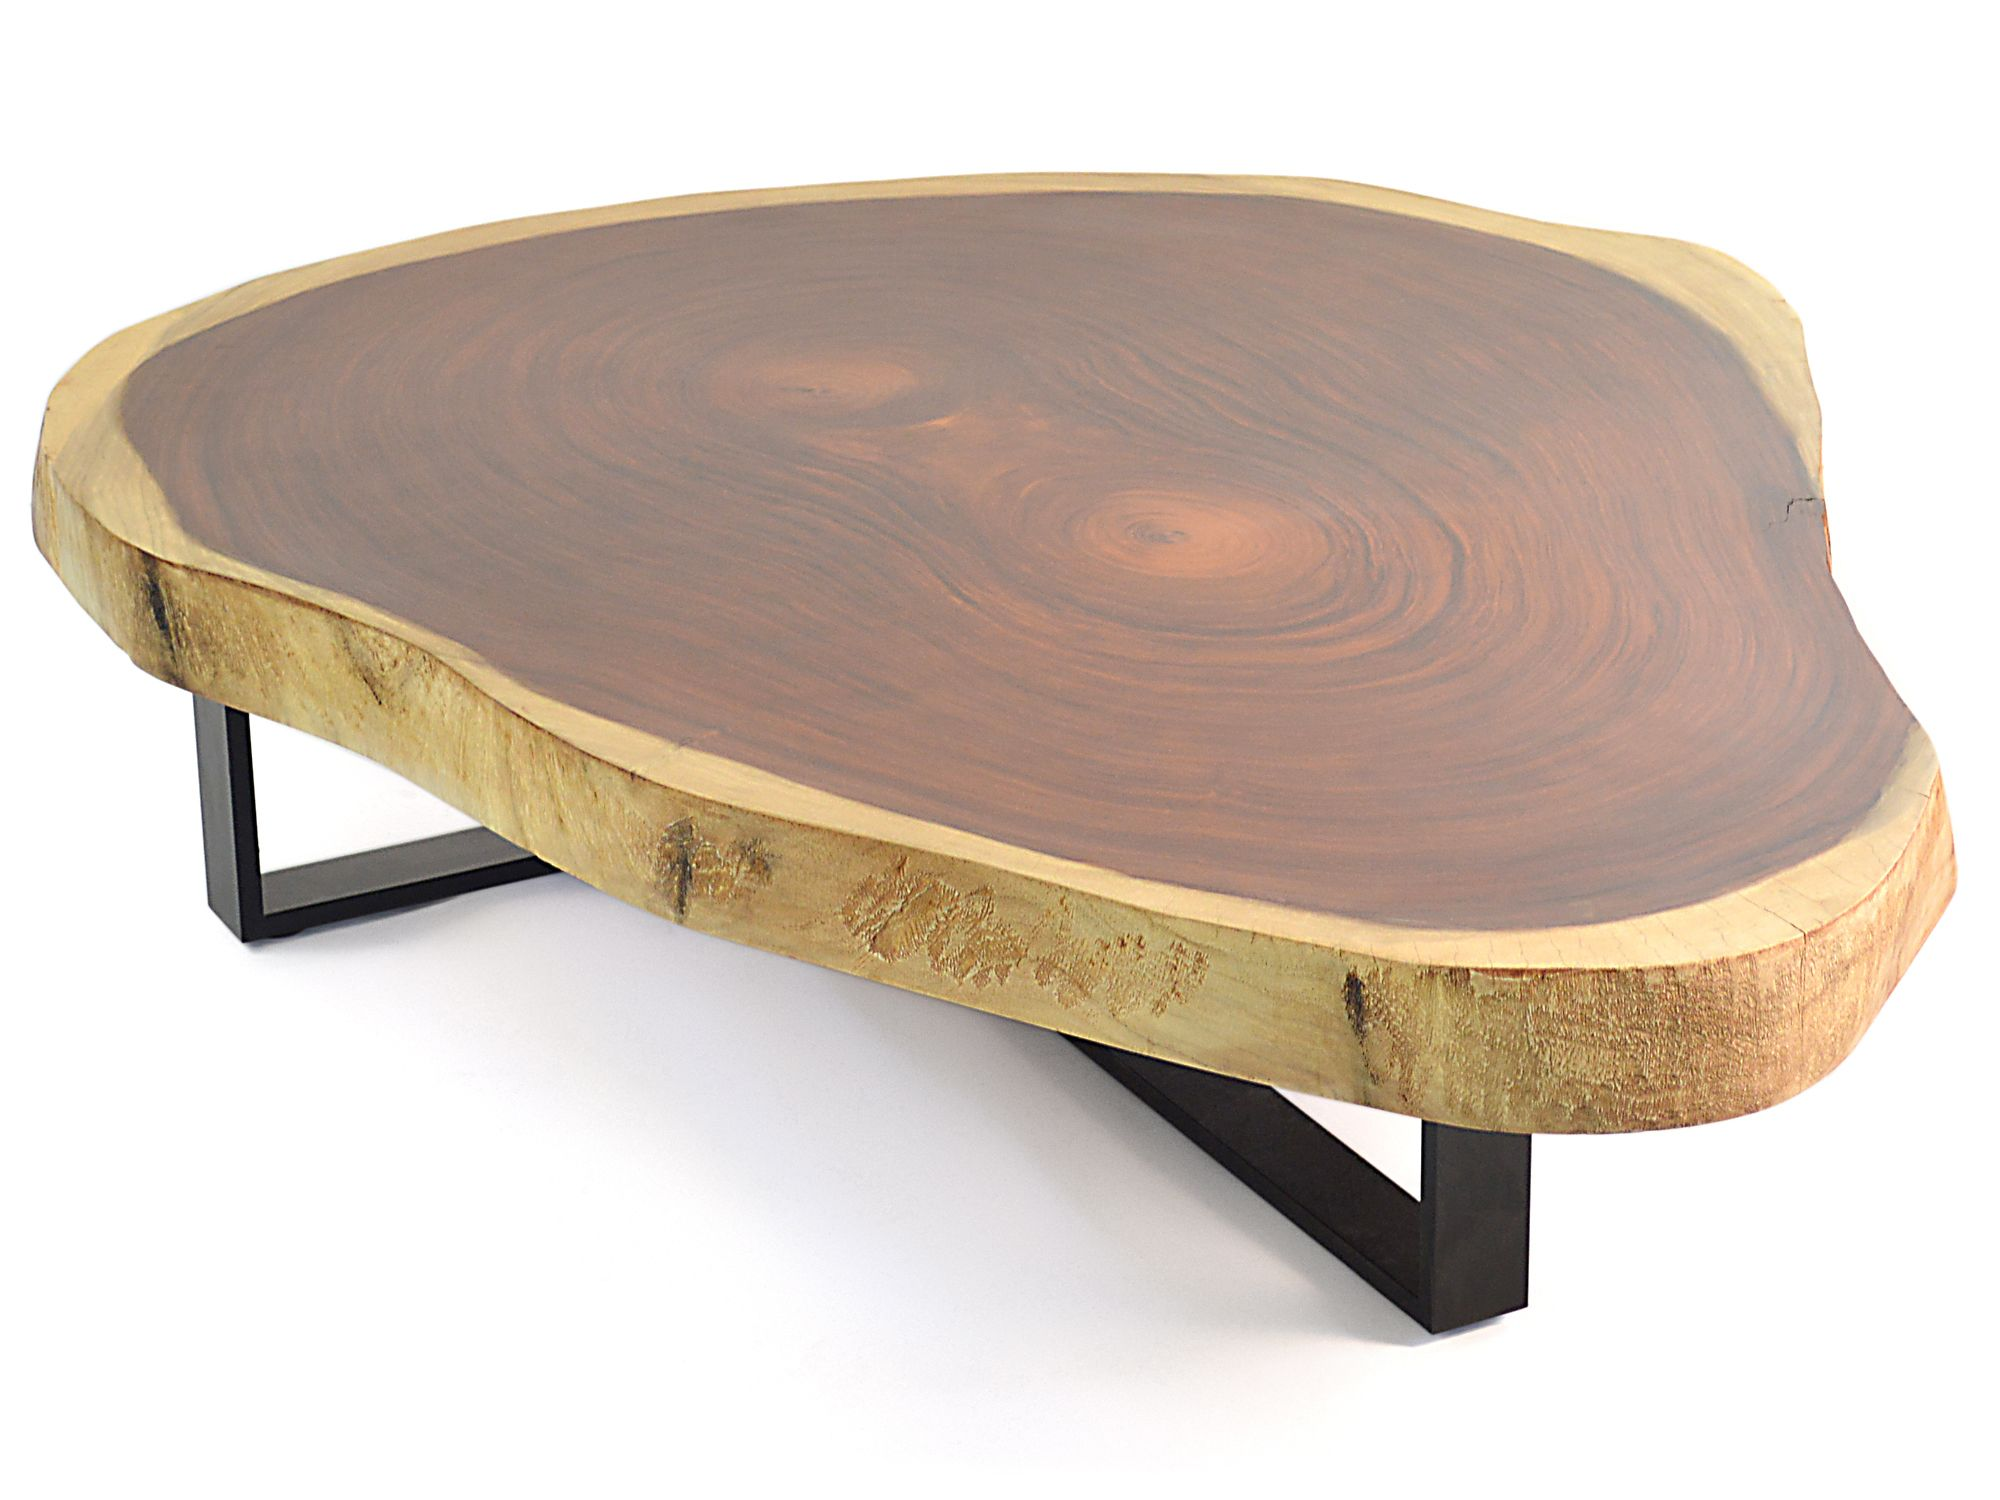 Wood Coffee Tables, Wood Table, Project Ideas, Wood Furniture, Minimalism,